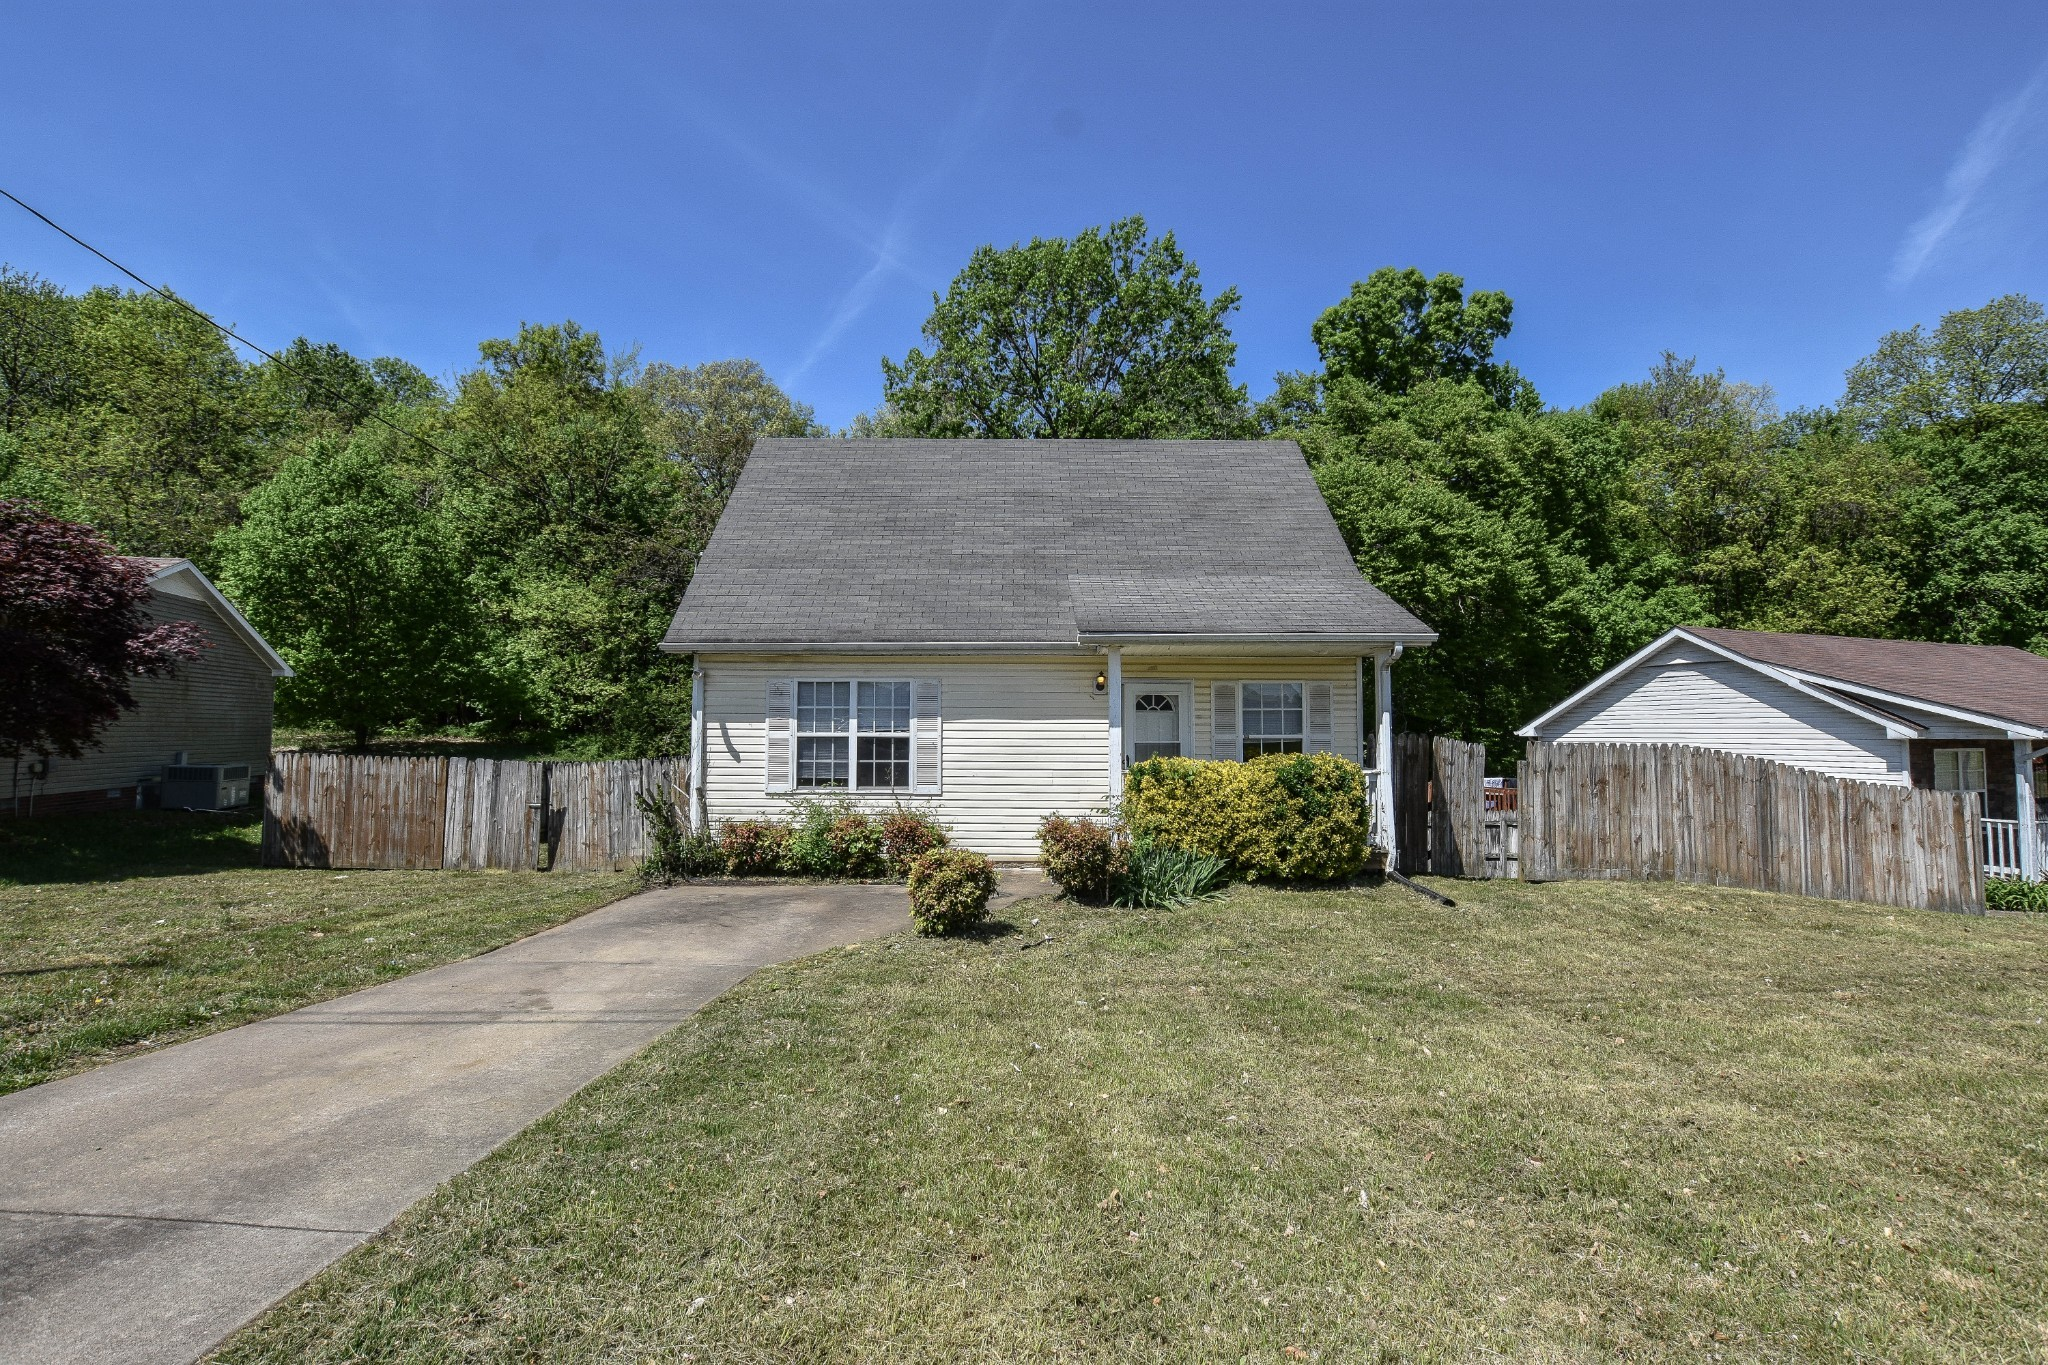 977 Applegrove Cir Property Photo - Clarksville, TN real estate listing